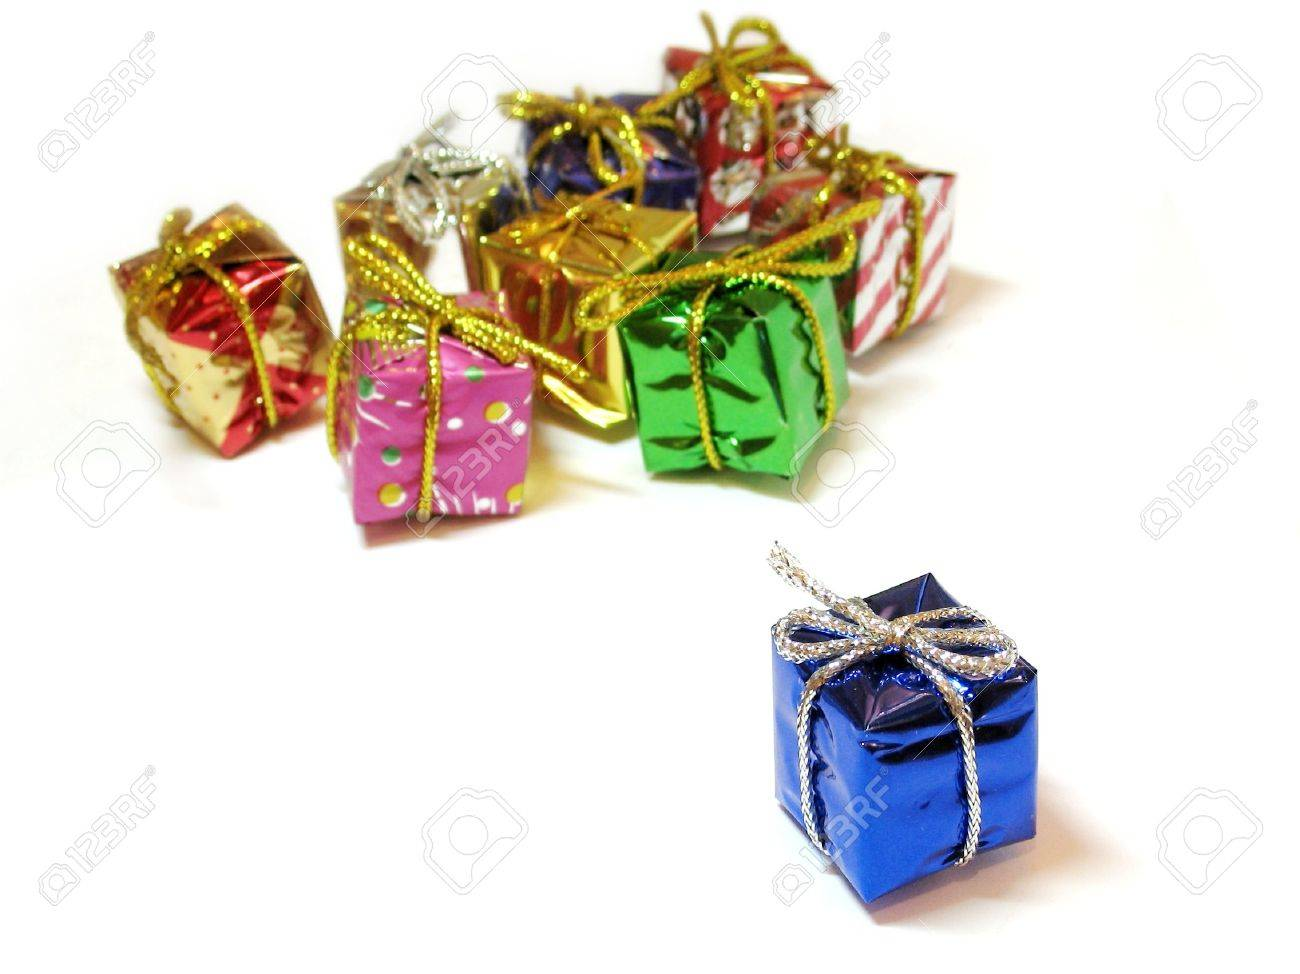 Colorful decorative mini gift boxes on white background, one focused in the foreground, the others unfocused in the background Stock Photo - 622723